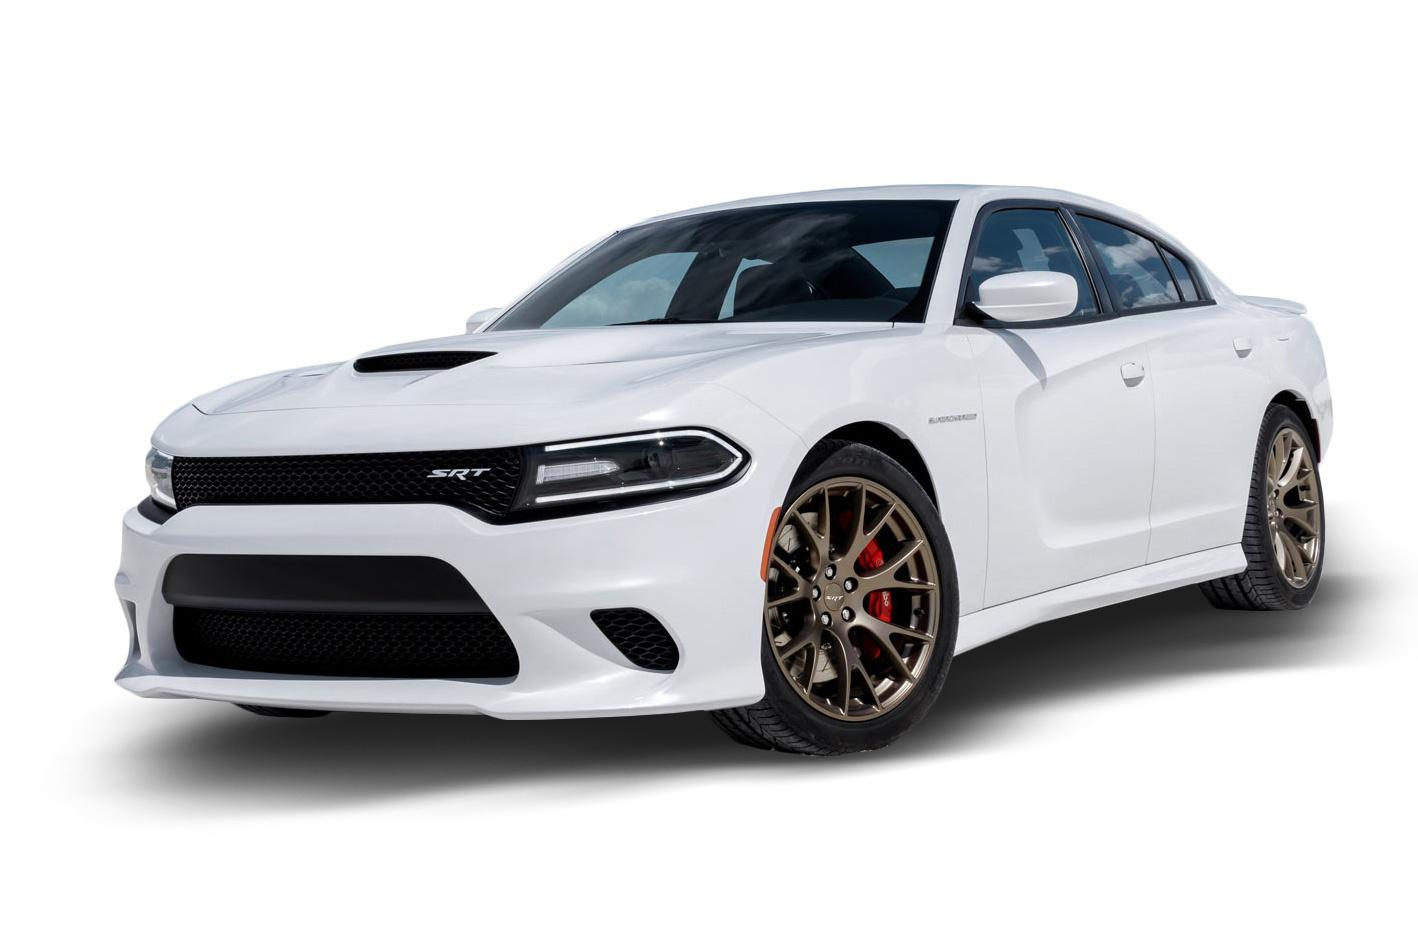 Wallpaper 2e also Dodge Challenger Srt Demon Convertible New Colors 37411 F 243995 likewise Thumb besides Galeria De Imagenes De Carros Bonitos 5 as well 1970 74mopare 20body 20 20large. on dodge challenger